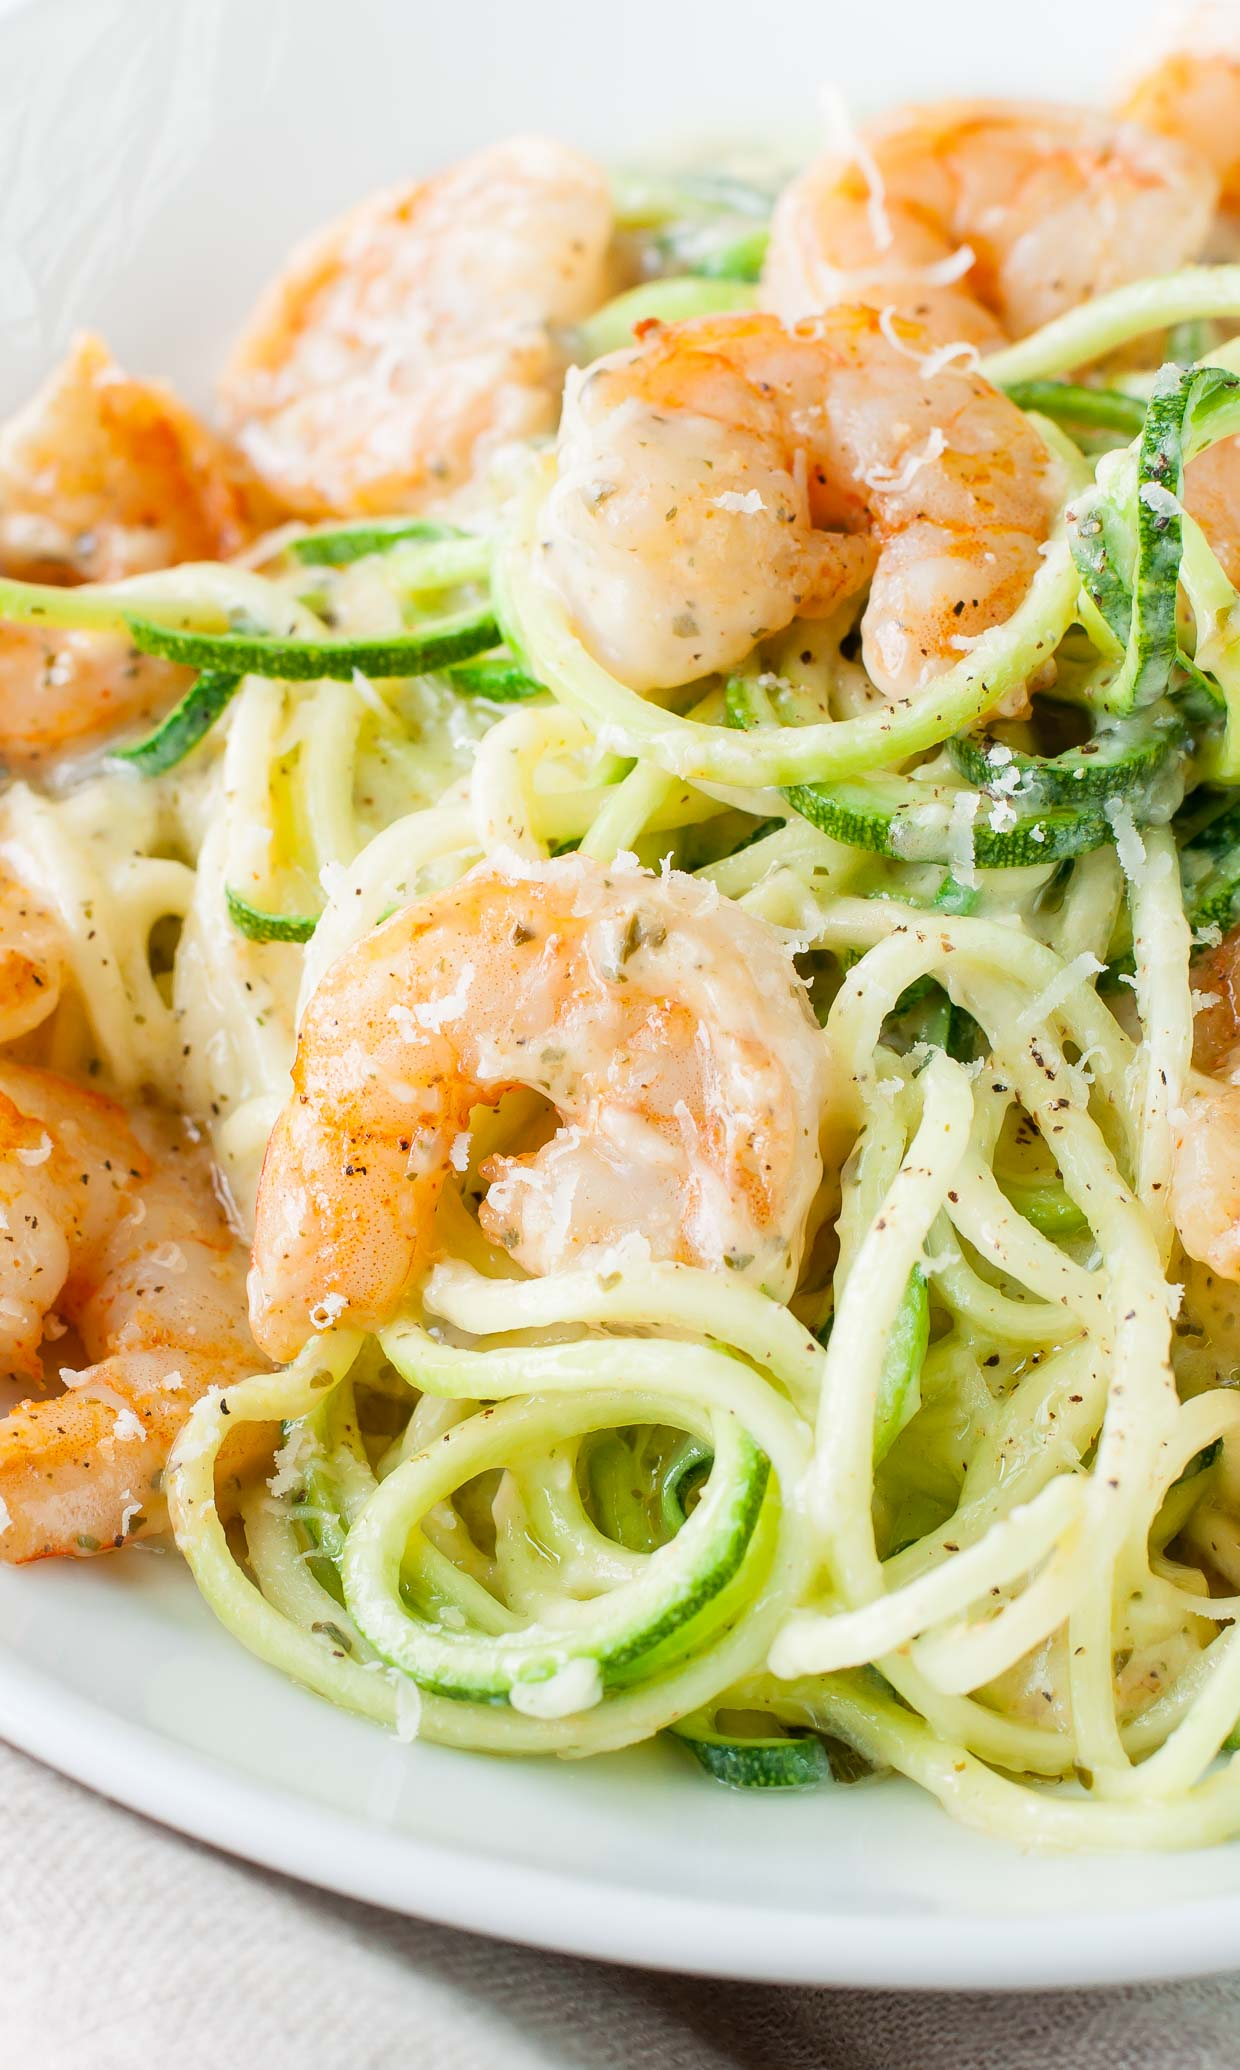 Shrimp and Zucchini Noodles in a Parmesan Pesto Cream Sauce